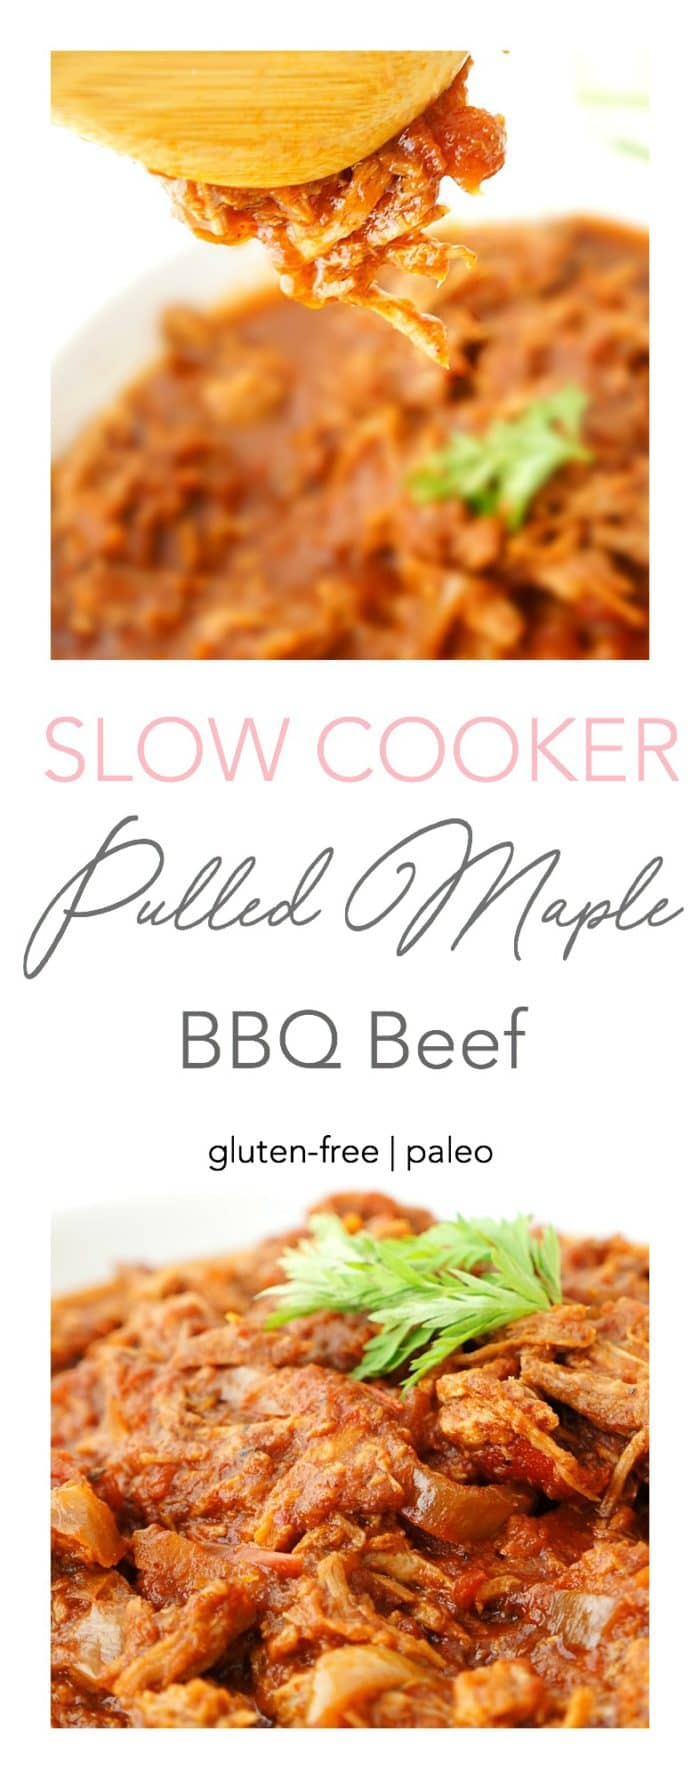 Crockpot Pulled Maple BBQ Beef